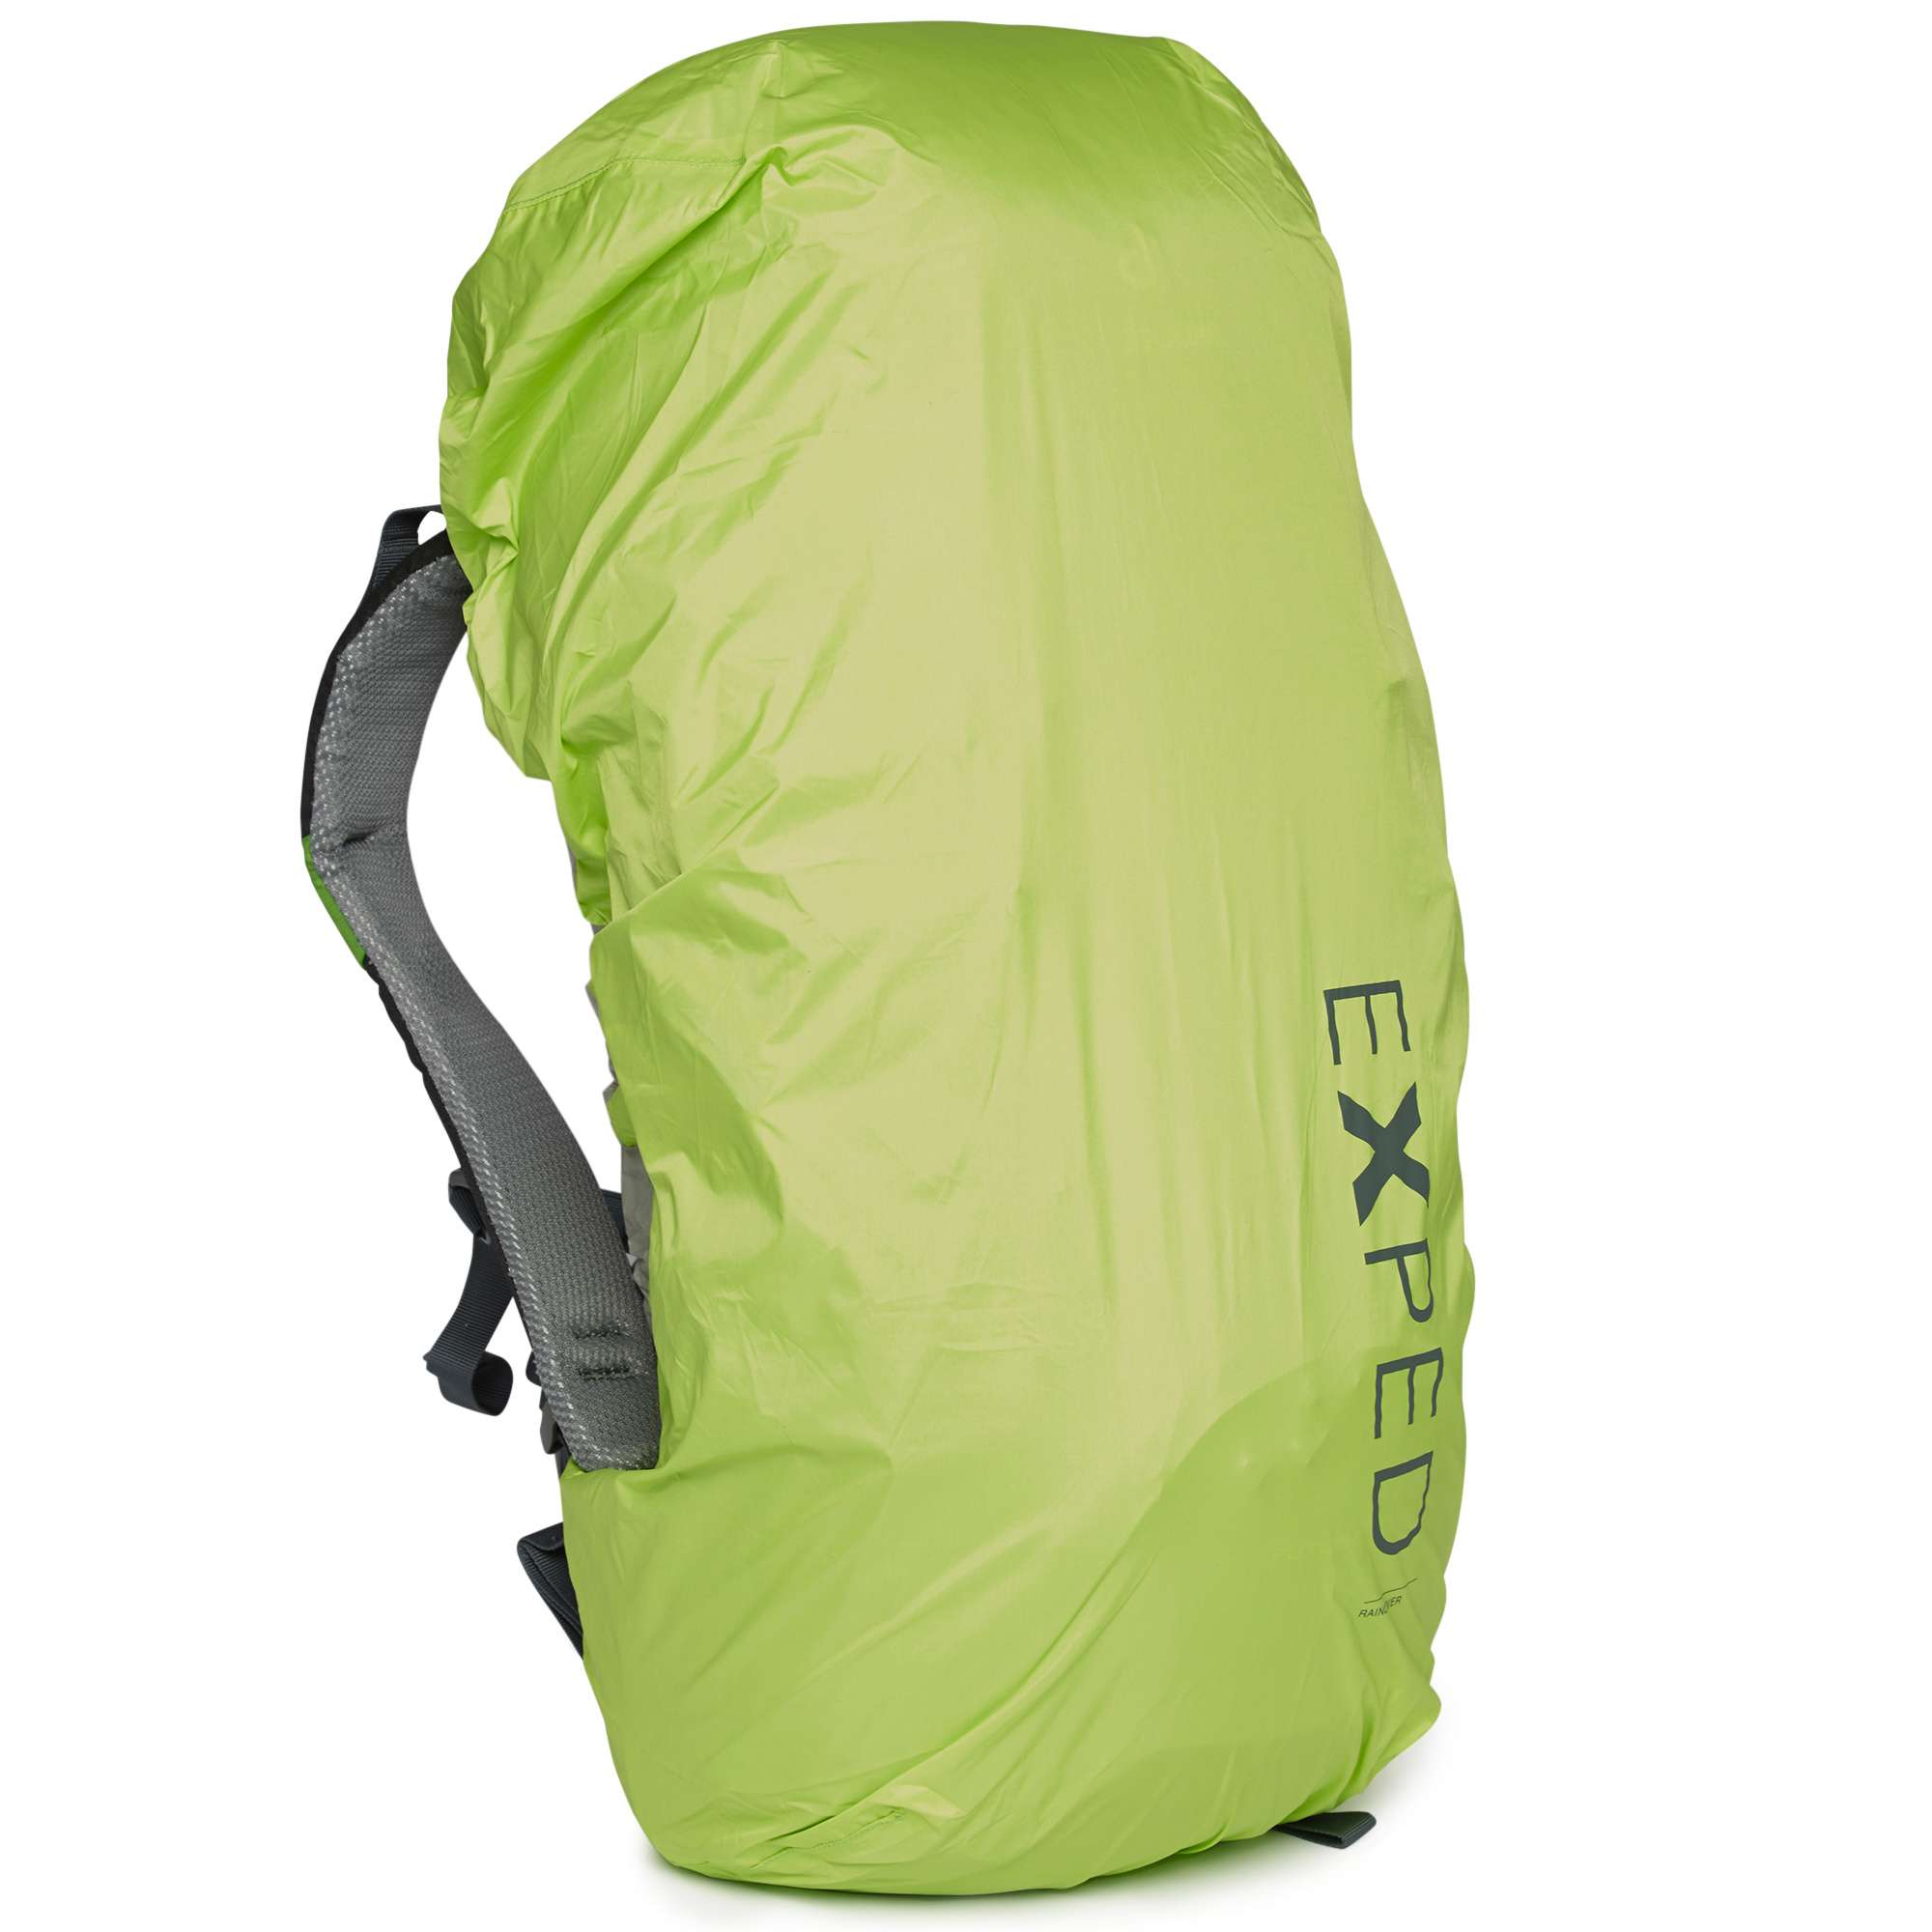 EXPED Rain Cover Medium (25-40L)